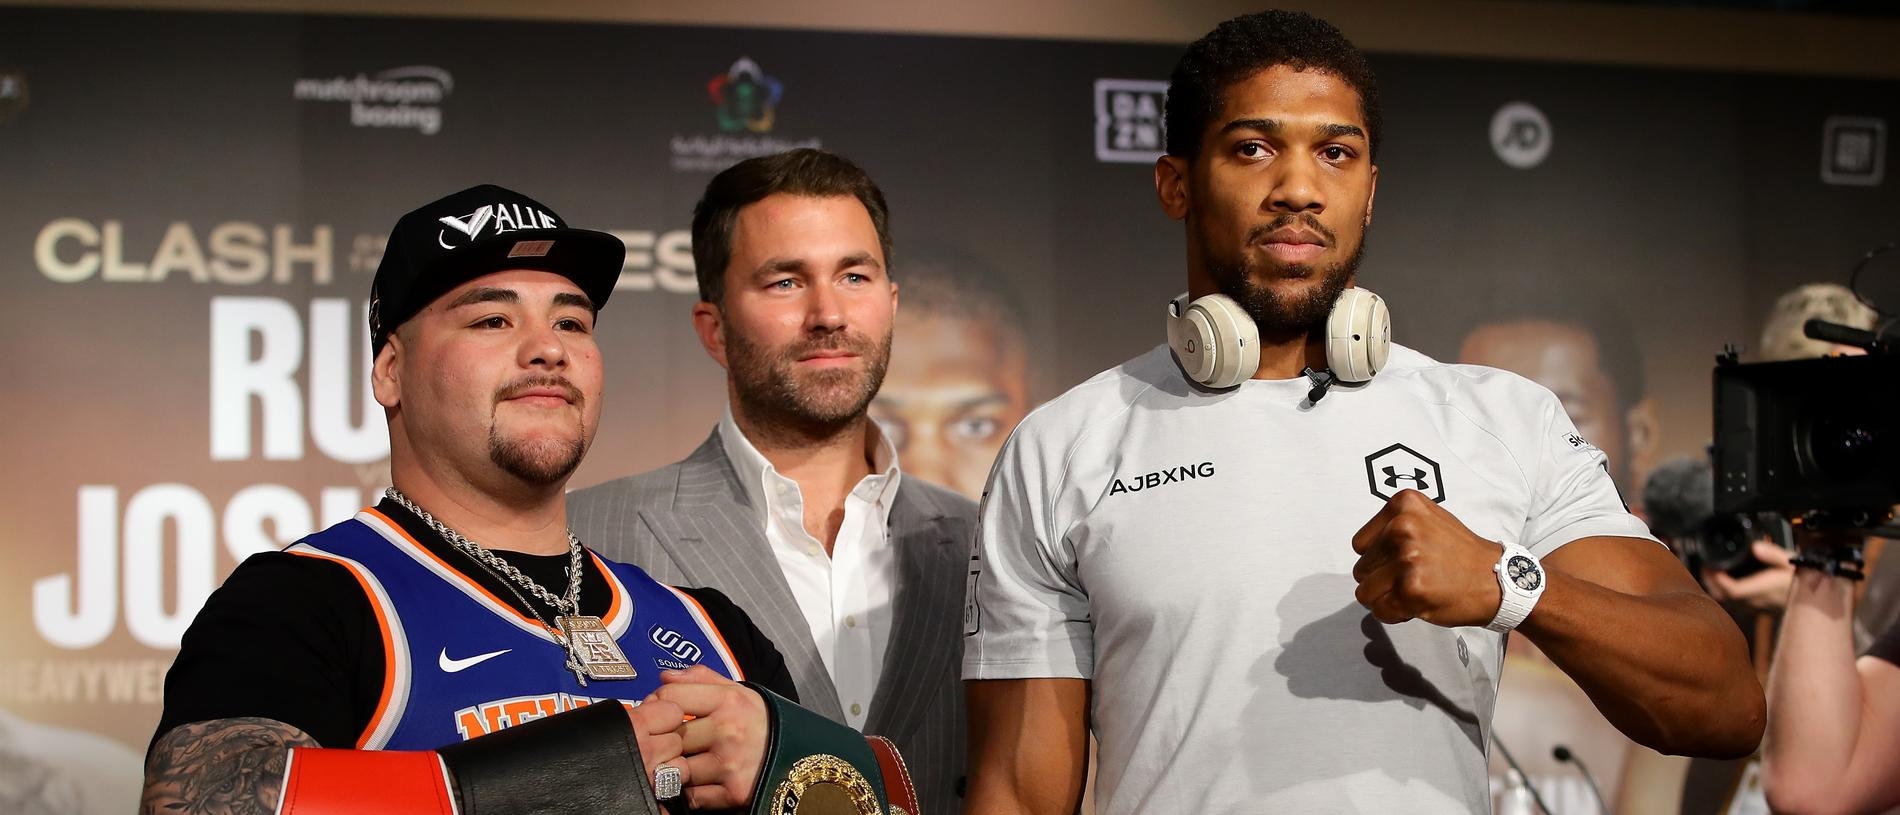 Andy Ruiz Jr v Anthony Joshua 2 - Final Press Conference